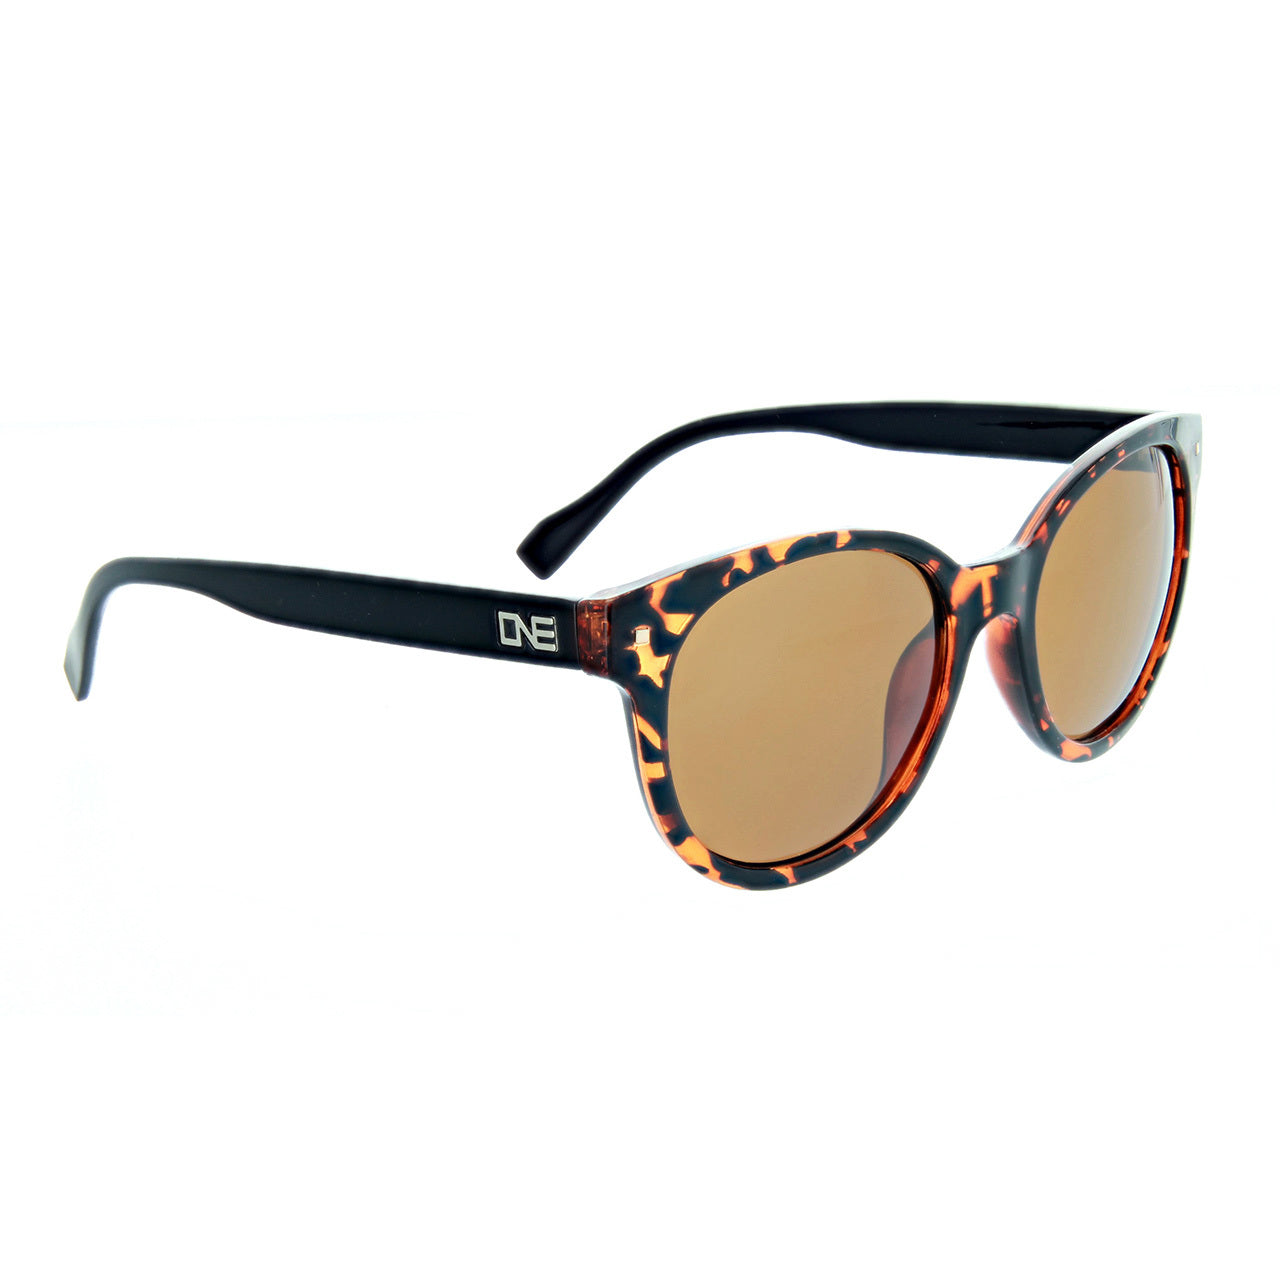 Optic Nerve Hotplate Sunglasses - Shiny Honey Demi Black